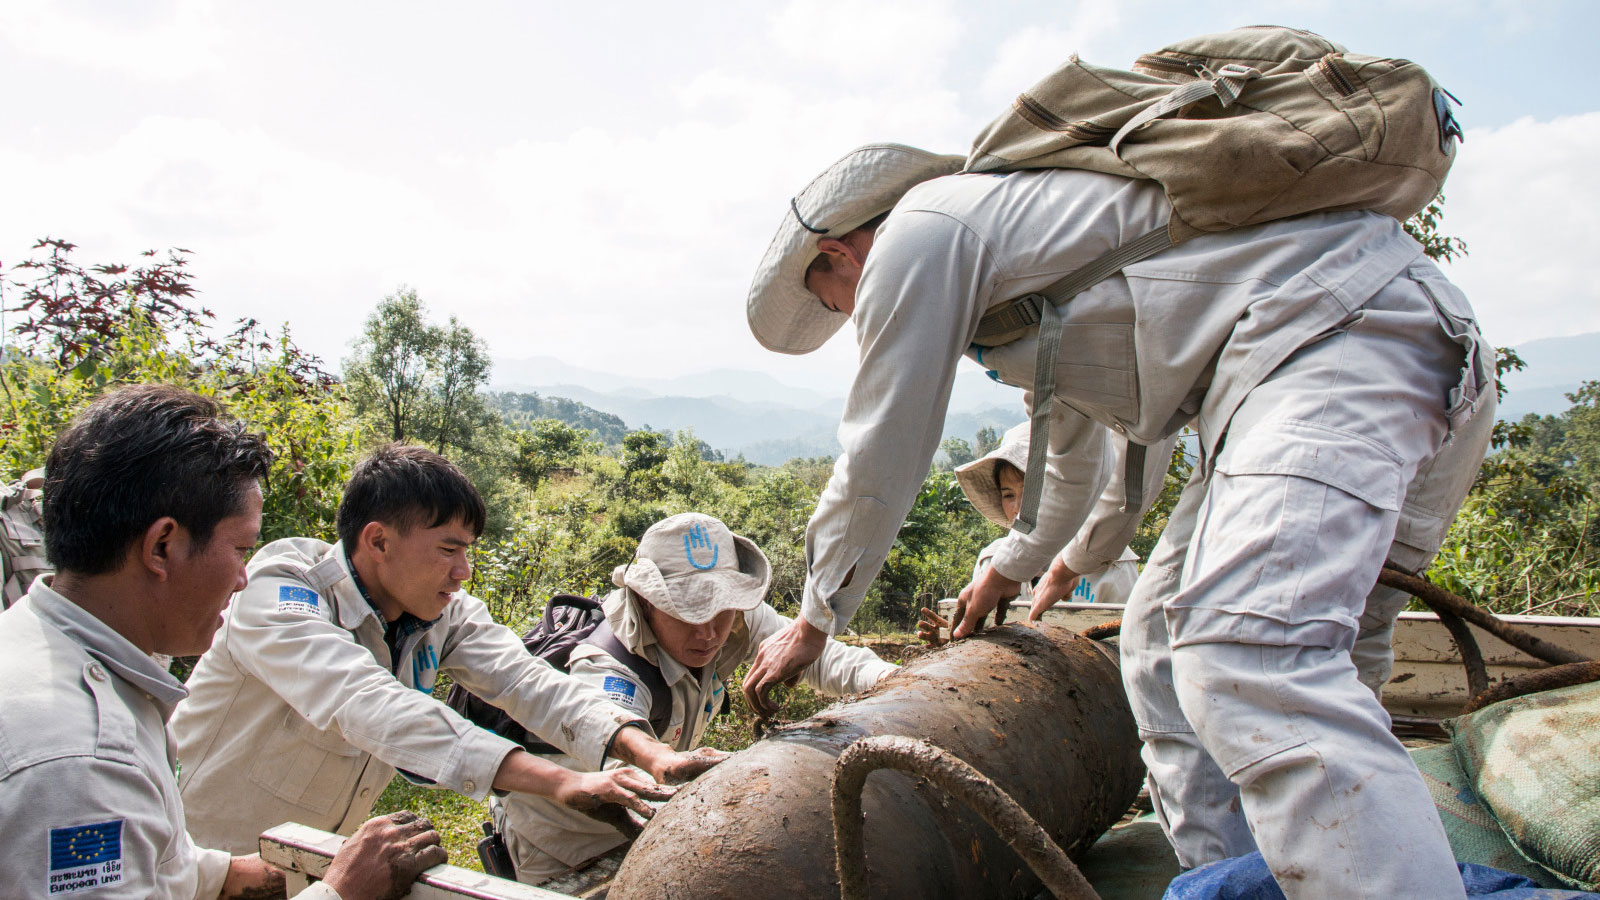 Laos-deminers-remove-a-huge-bomb-from-the-ground-and-move-it-to-an-area-where-it-can-be-destroyed